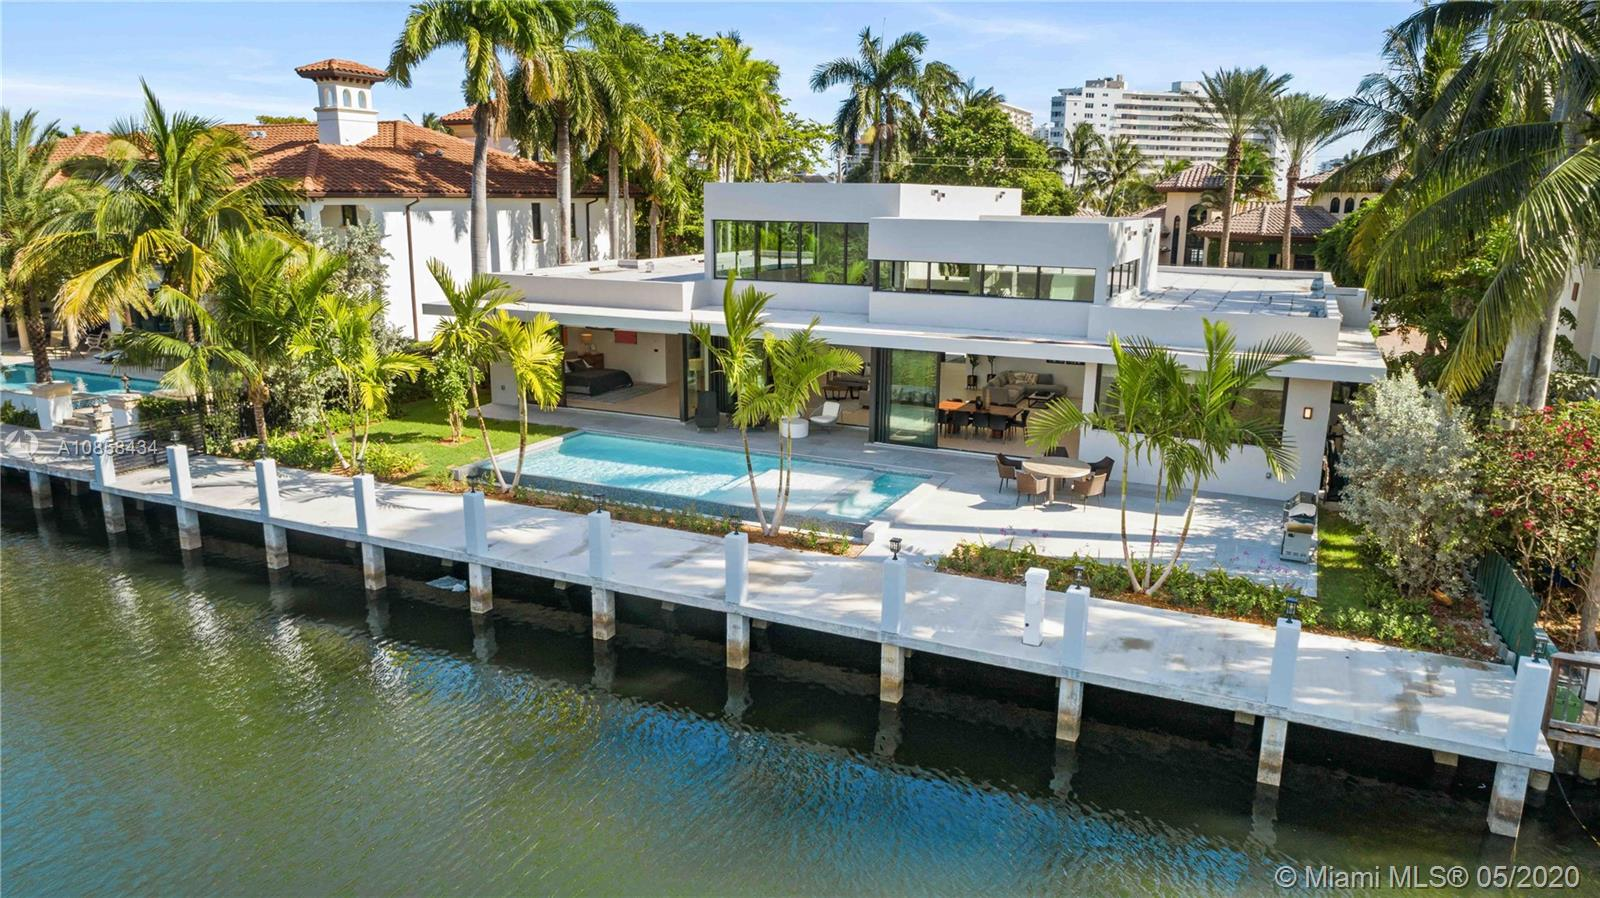 New construction, One Story Modern home, on 100Ft. of deep water. A Yachtsman's Paradise! State of the Art home with Lutron home automation, smart system wired for window treatments, lighting, speakers & voice control ready. Honeywell security system, SIW high impact energy efficient windows with protective film.Concrete dock, Chefs Kitchen incl gas stove, SubZero & wine storage, Steam &Electric oven. Heated infinity pool with spa, 2-car garage, 4 bedrooms, 4-1/2 baths.